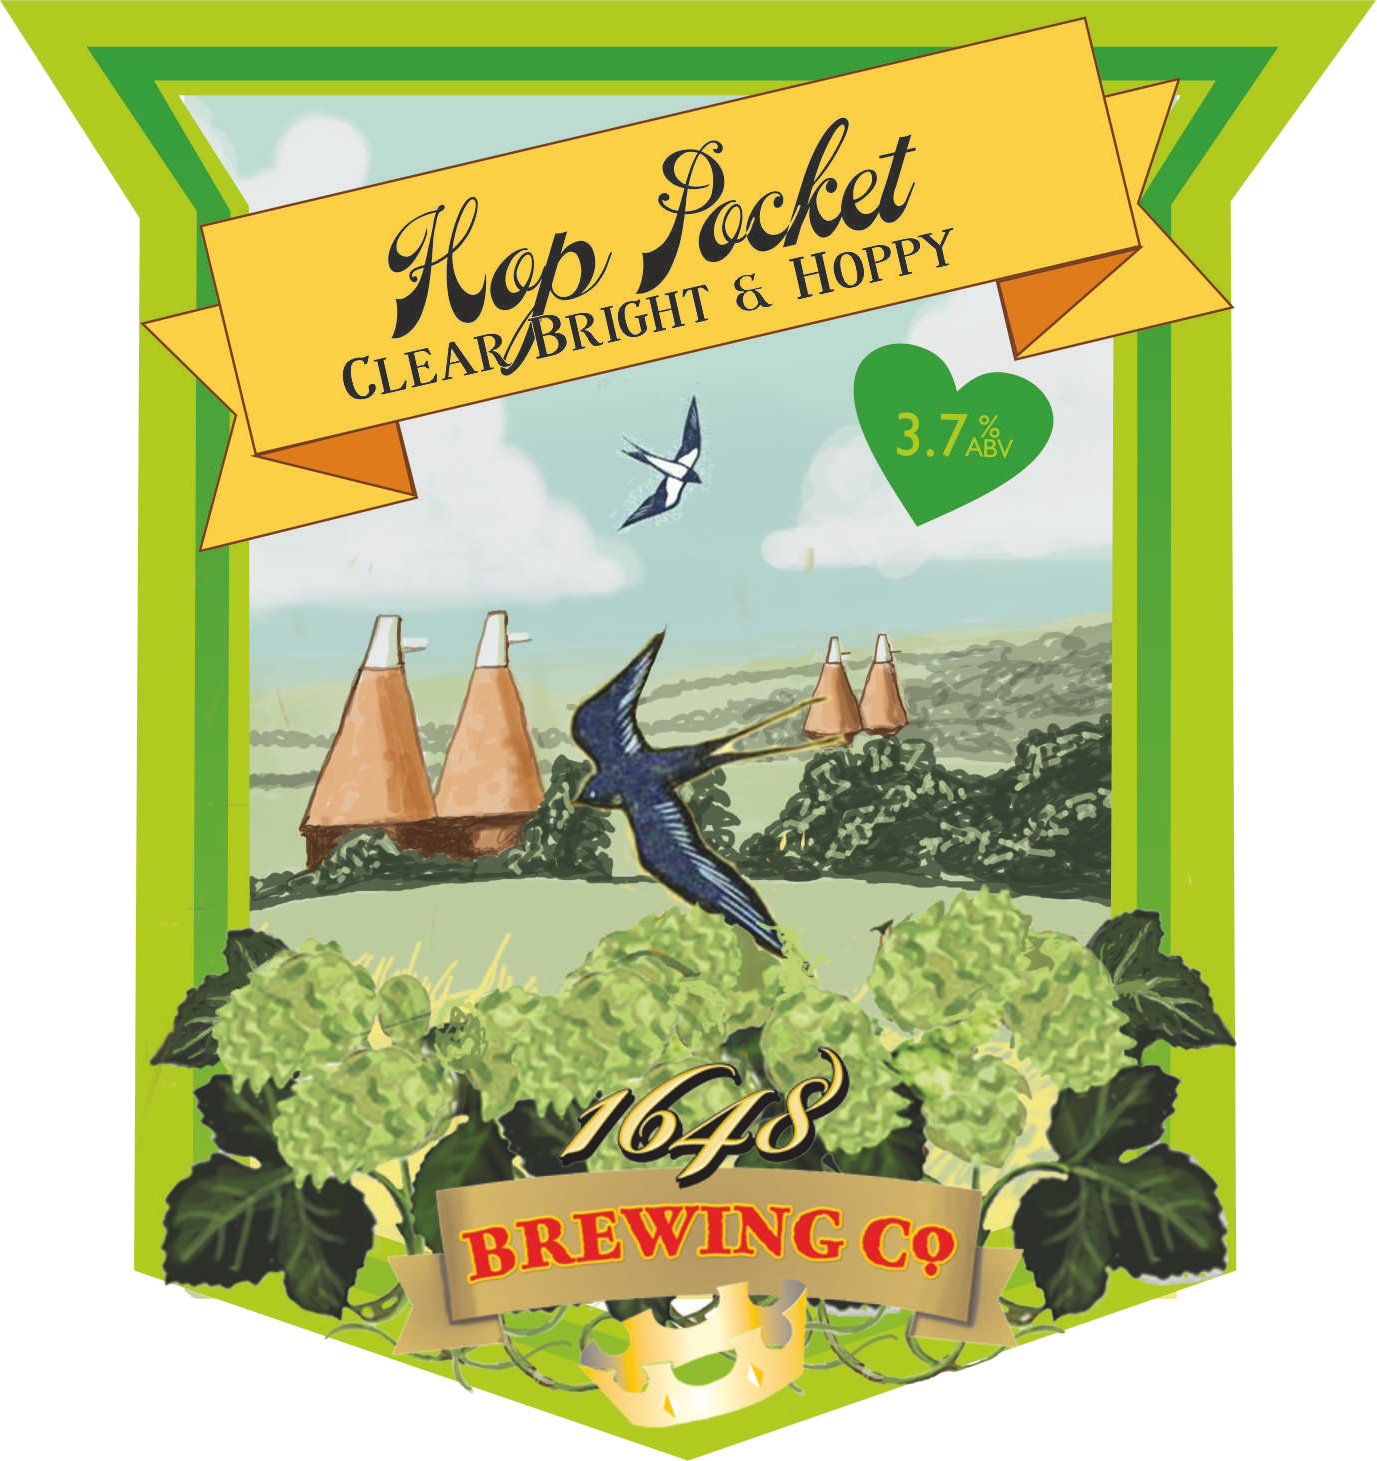 Hop Pocket 3.7%